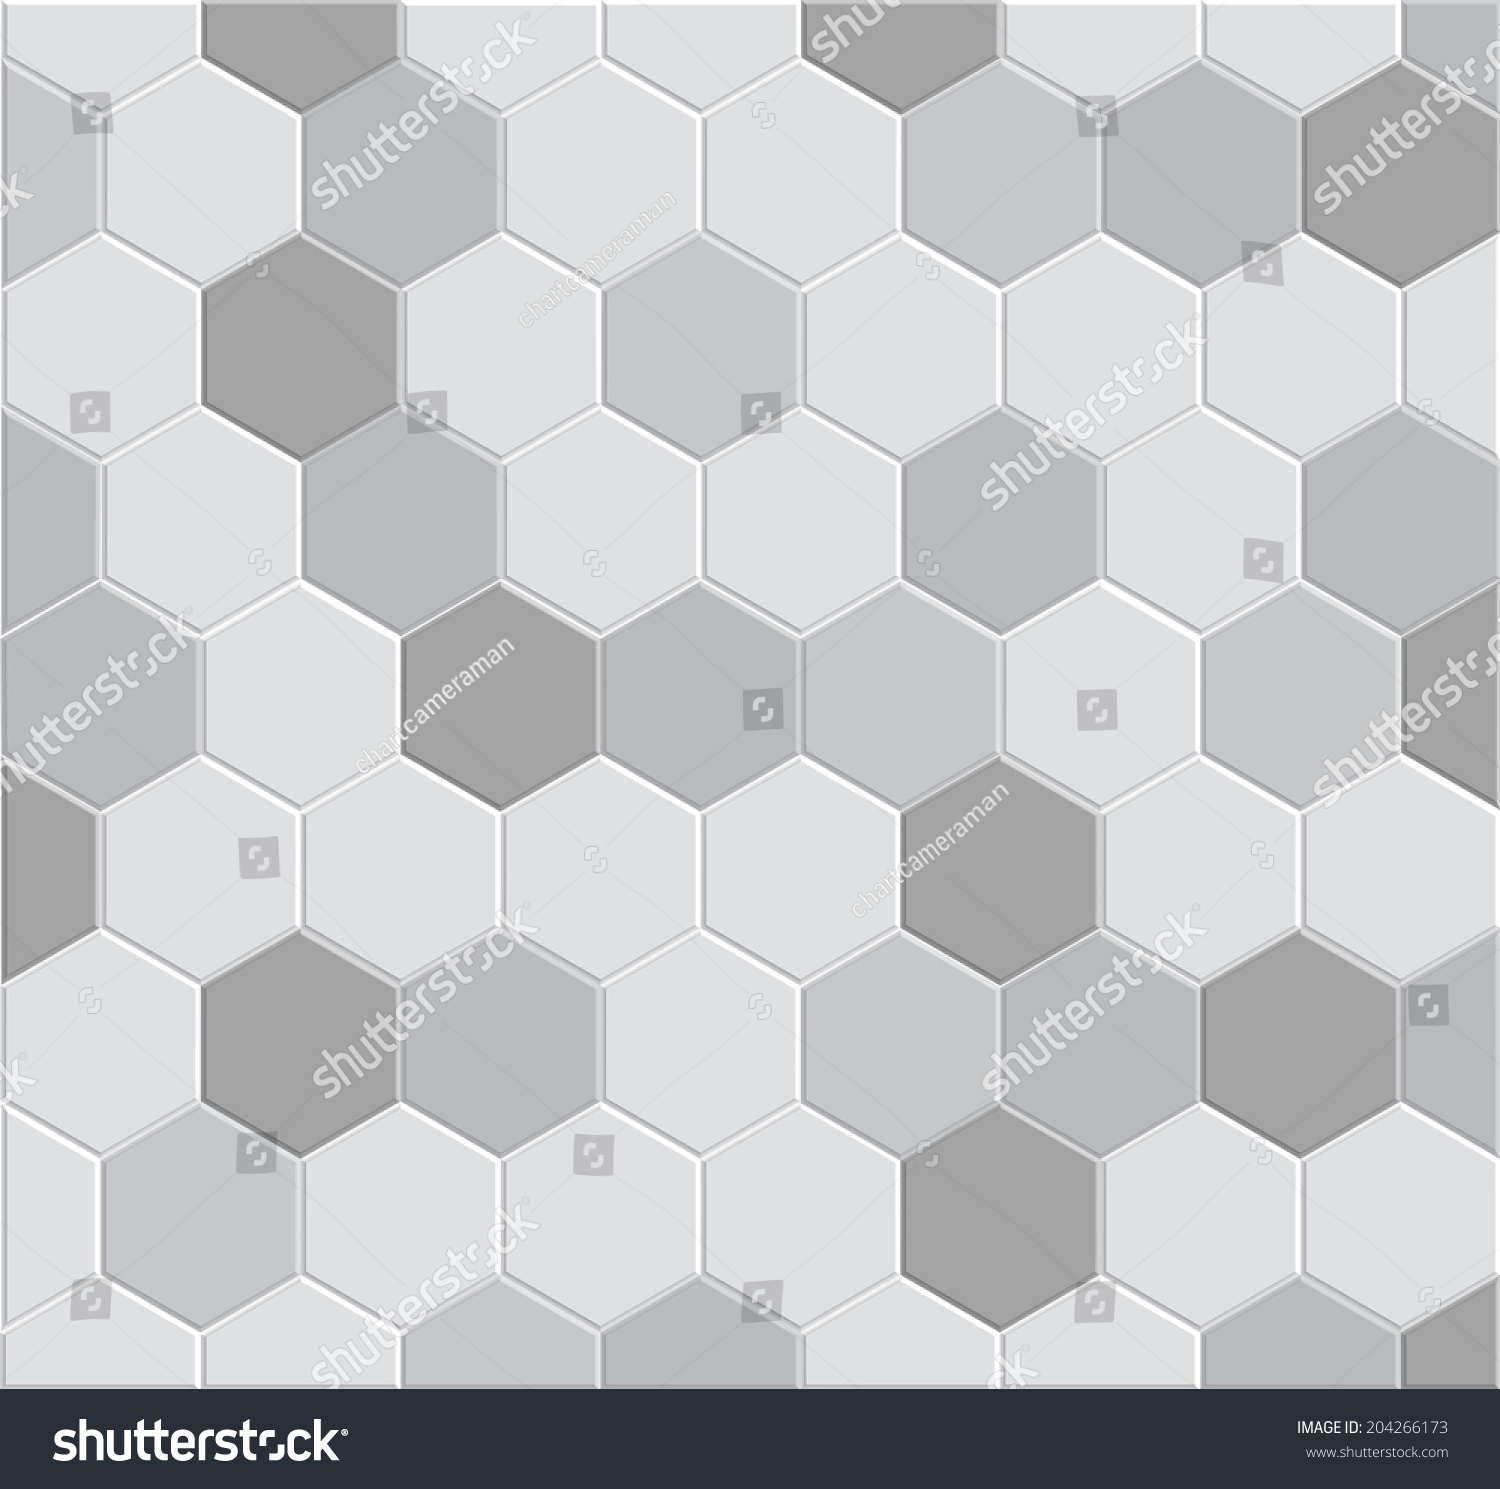 3d hexagon tile brick pattern decoration stock vector 204266173 3d hexagon tile brick pattern for decoration and design tile floor pathway clay brick stone dailygadgetfo Gallery